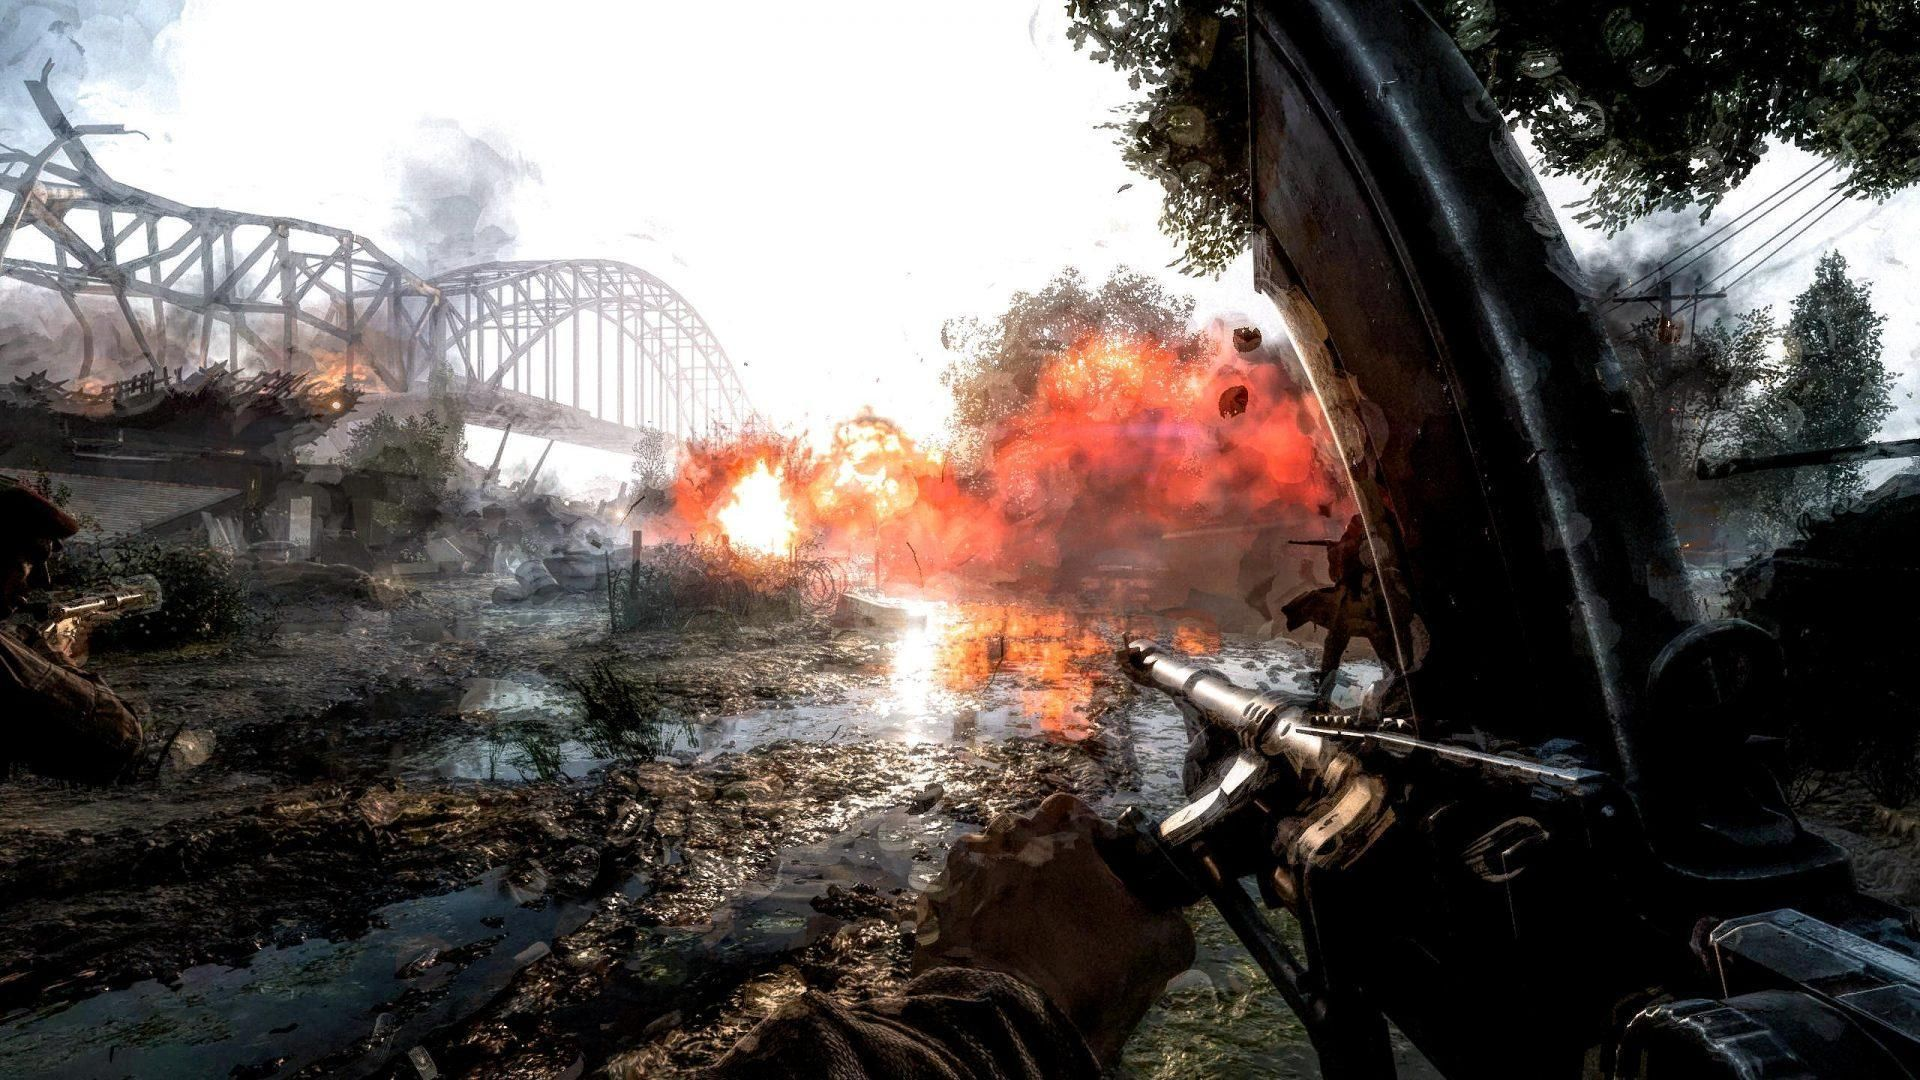 Battlefield 5 Guide - 5 MAJOR Tips To Help You Win More | Game News